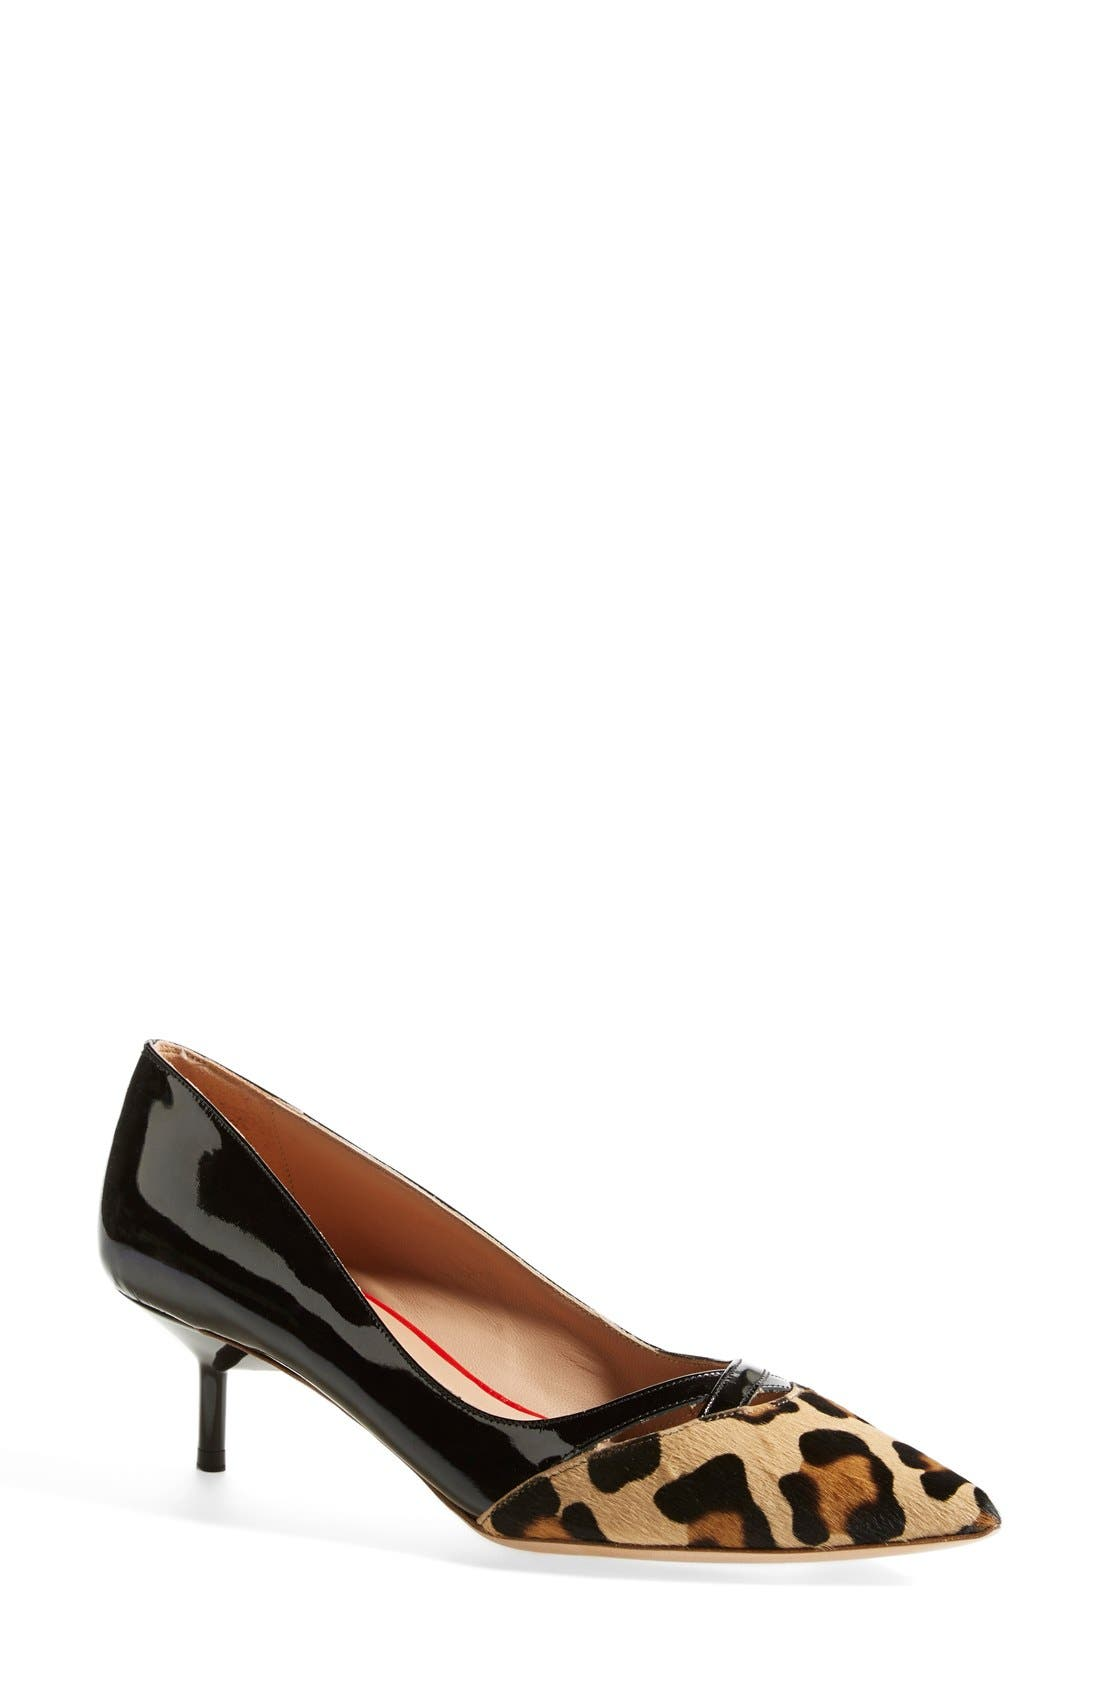 Alternate Image 1 Selected - Kurt Geiger London 'Cassidy Leo' Kitten Heel Pointy Toe Pump (Women)